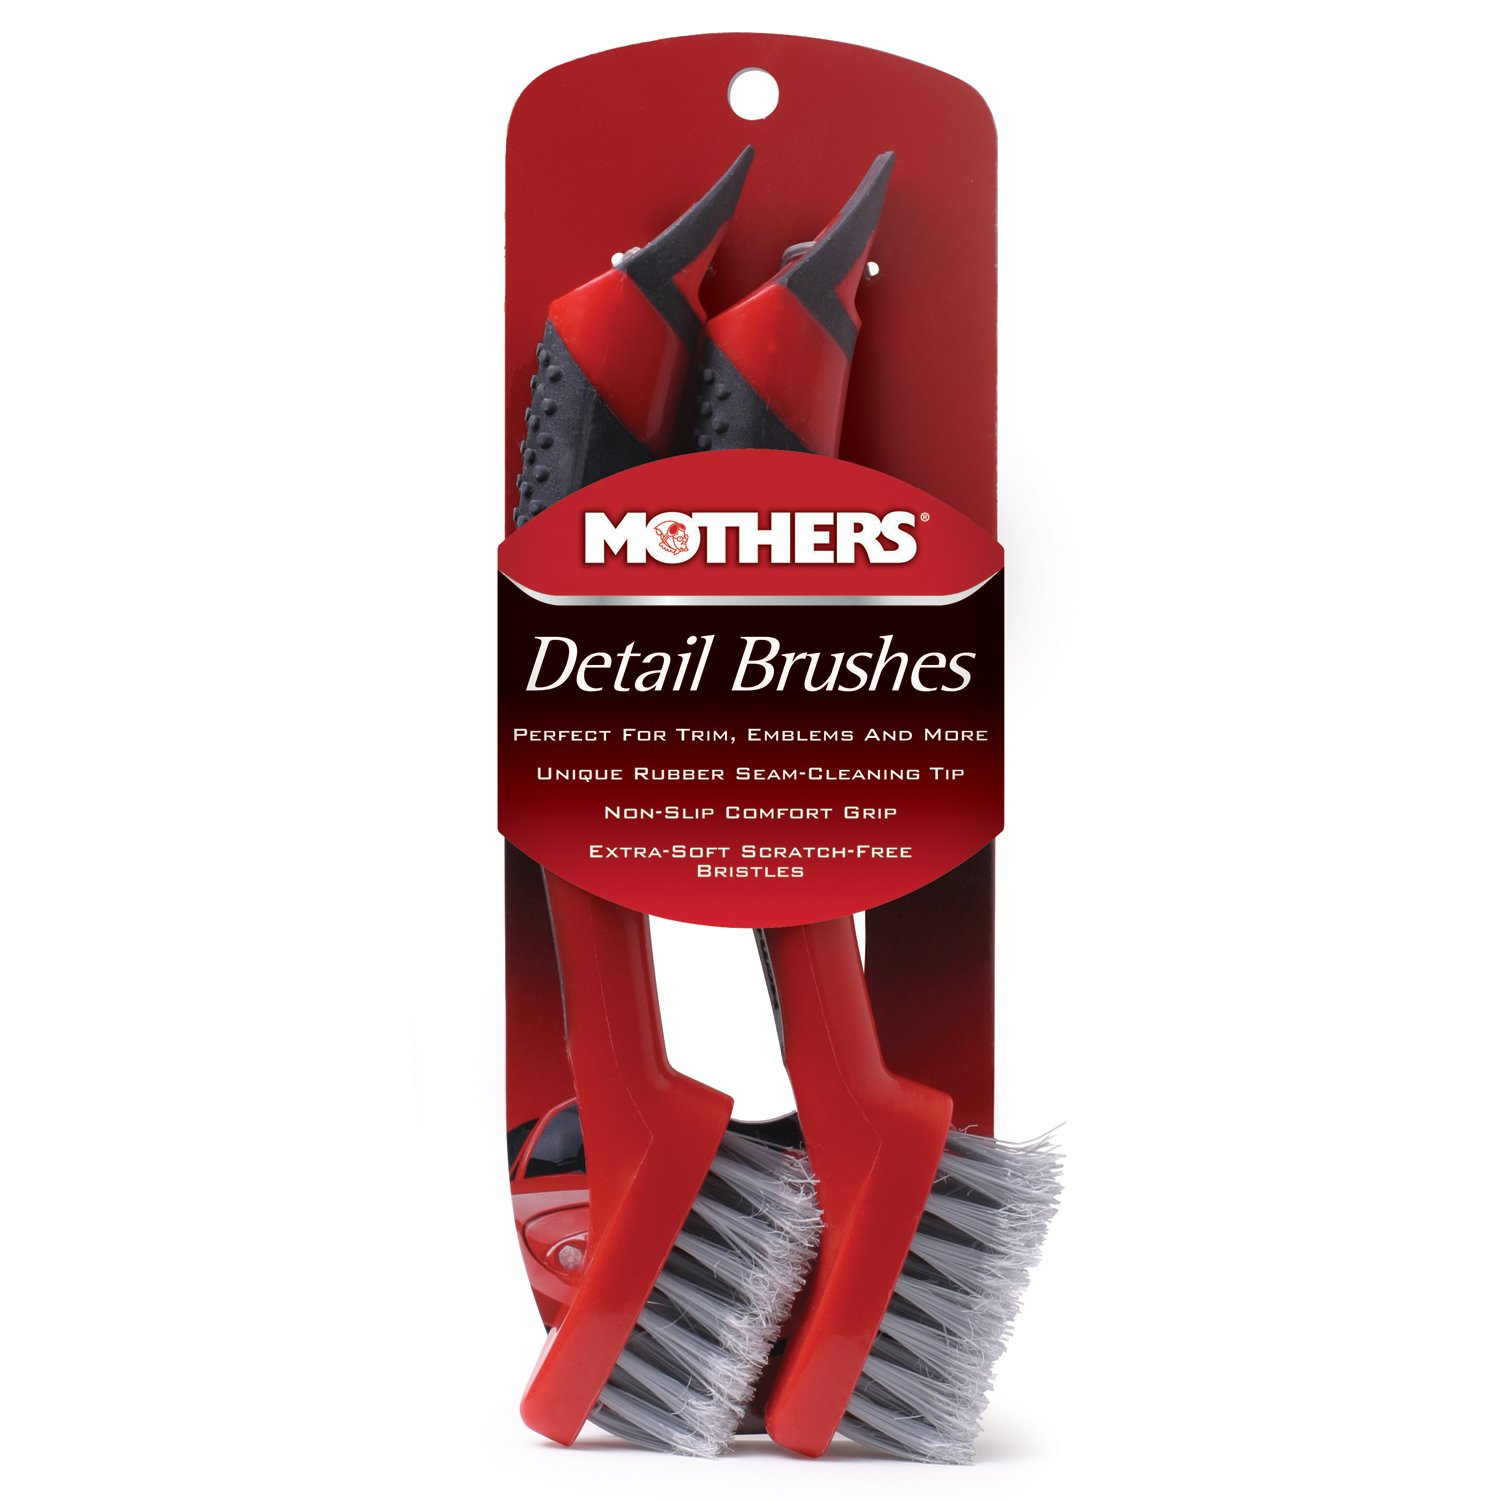 Mothers Detail Brush Set - 2 Pack 156200